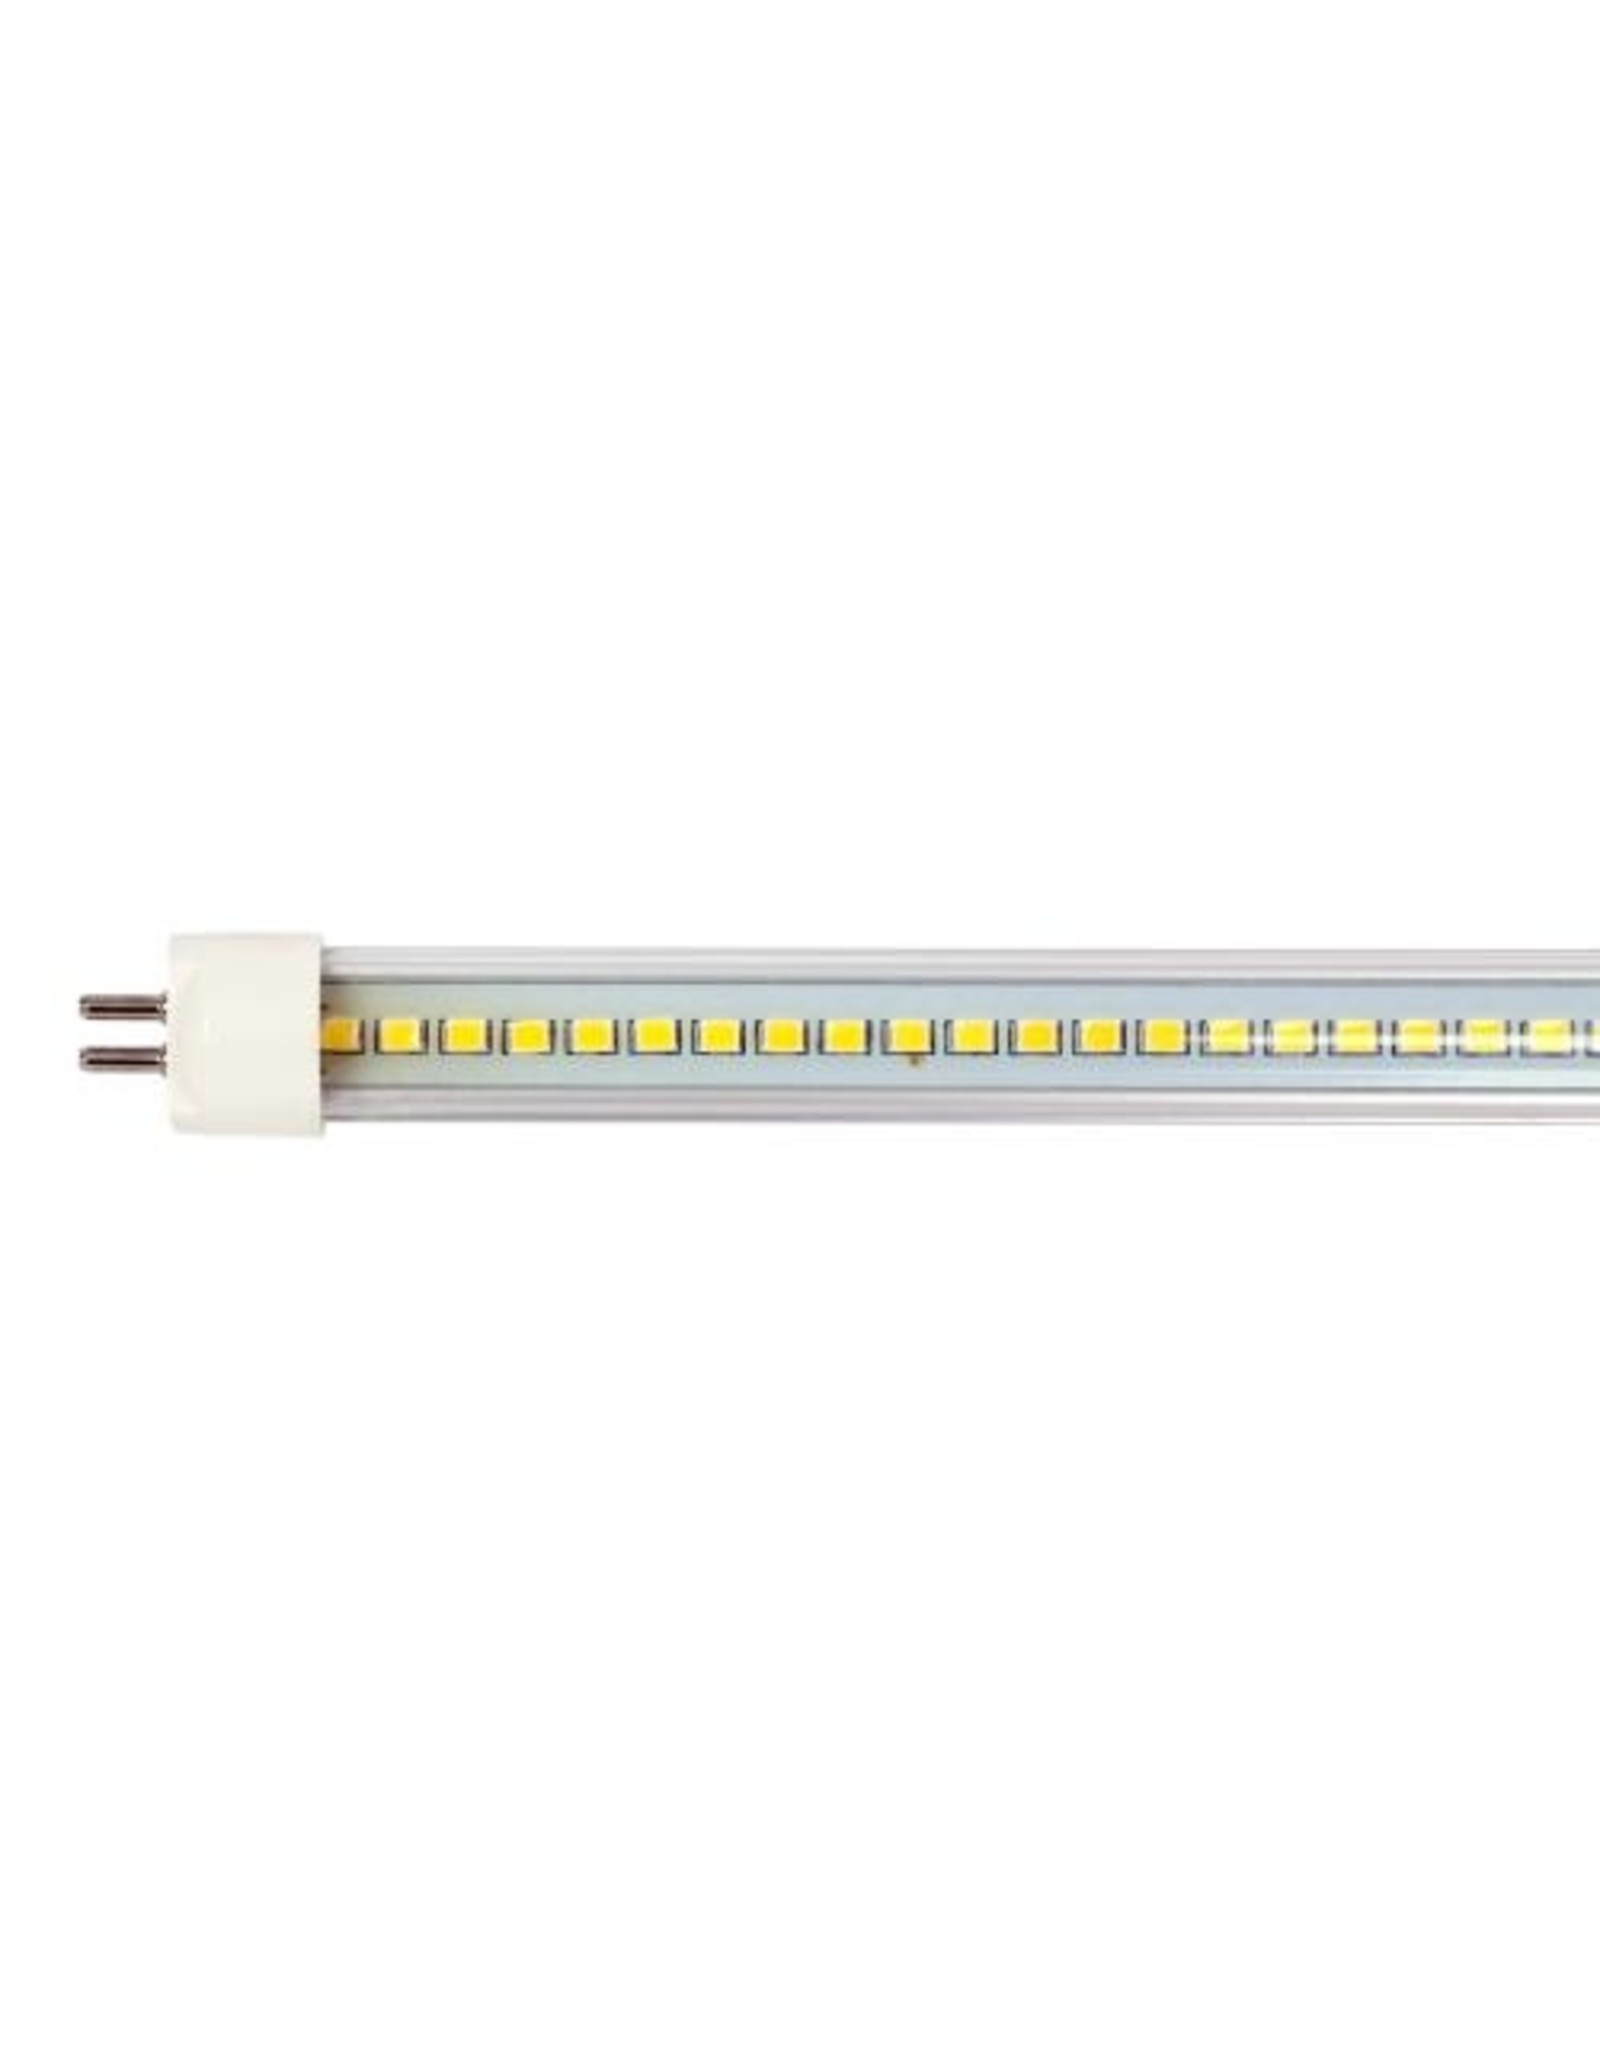 AgroLED iSunlight T5 White 5500 K LED Lamp - 4 ft / 41 Watt